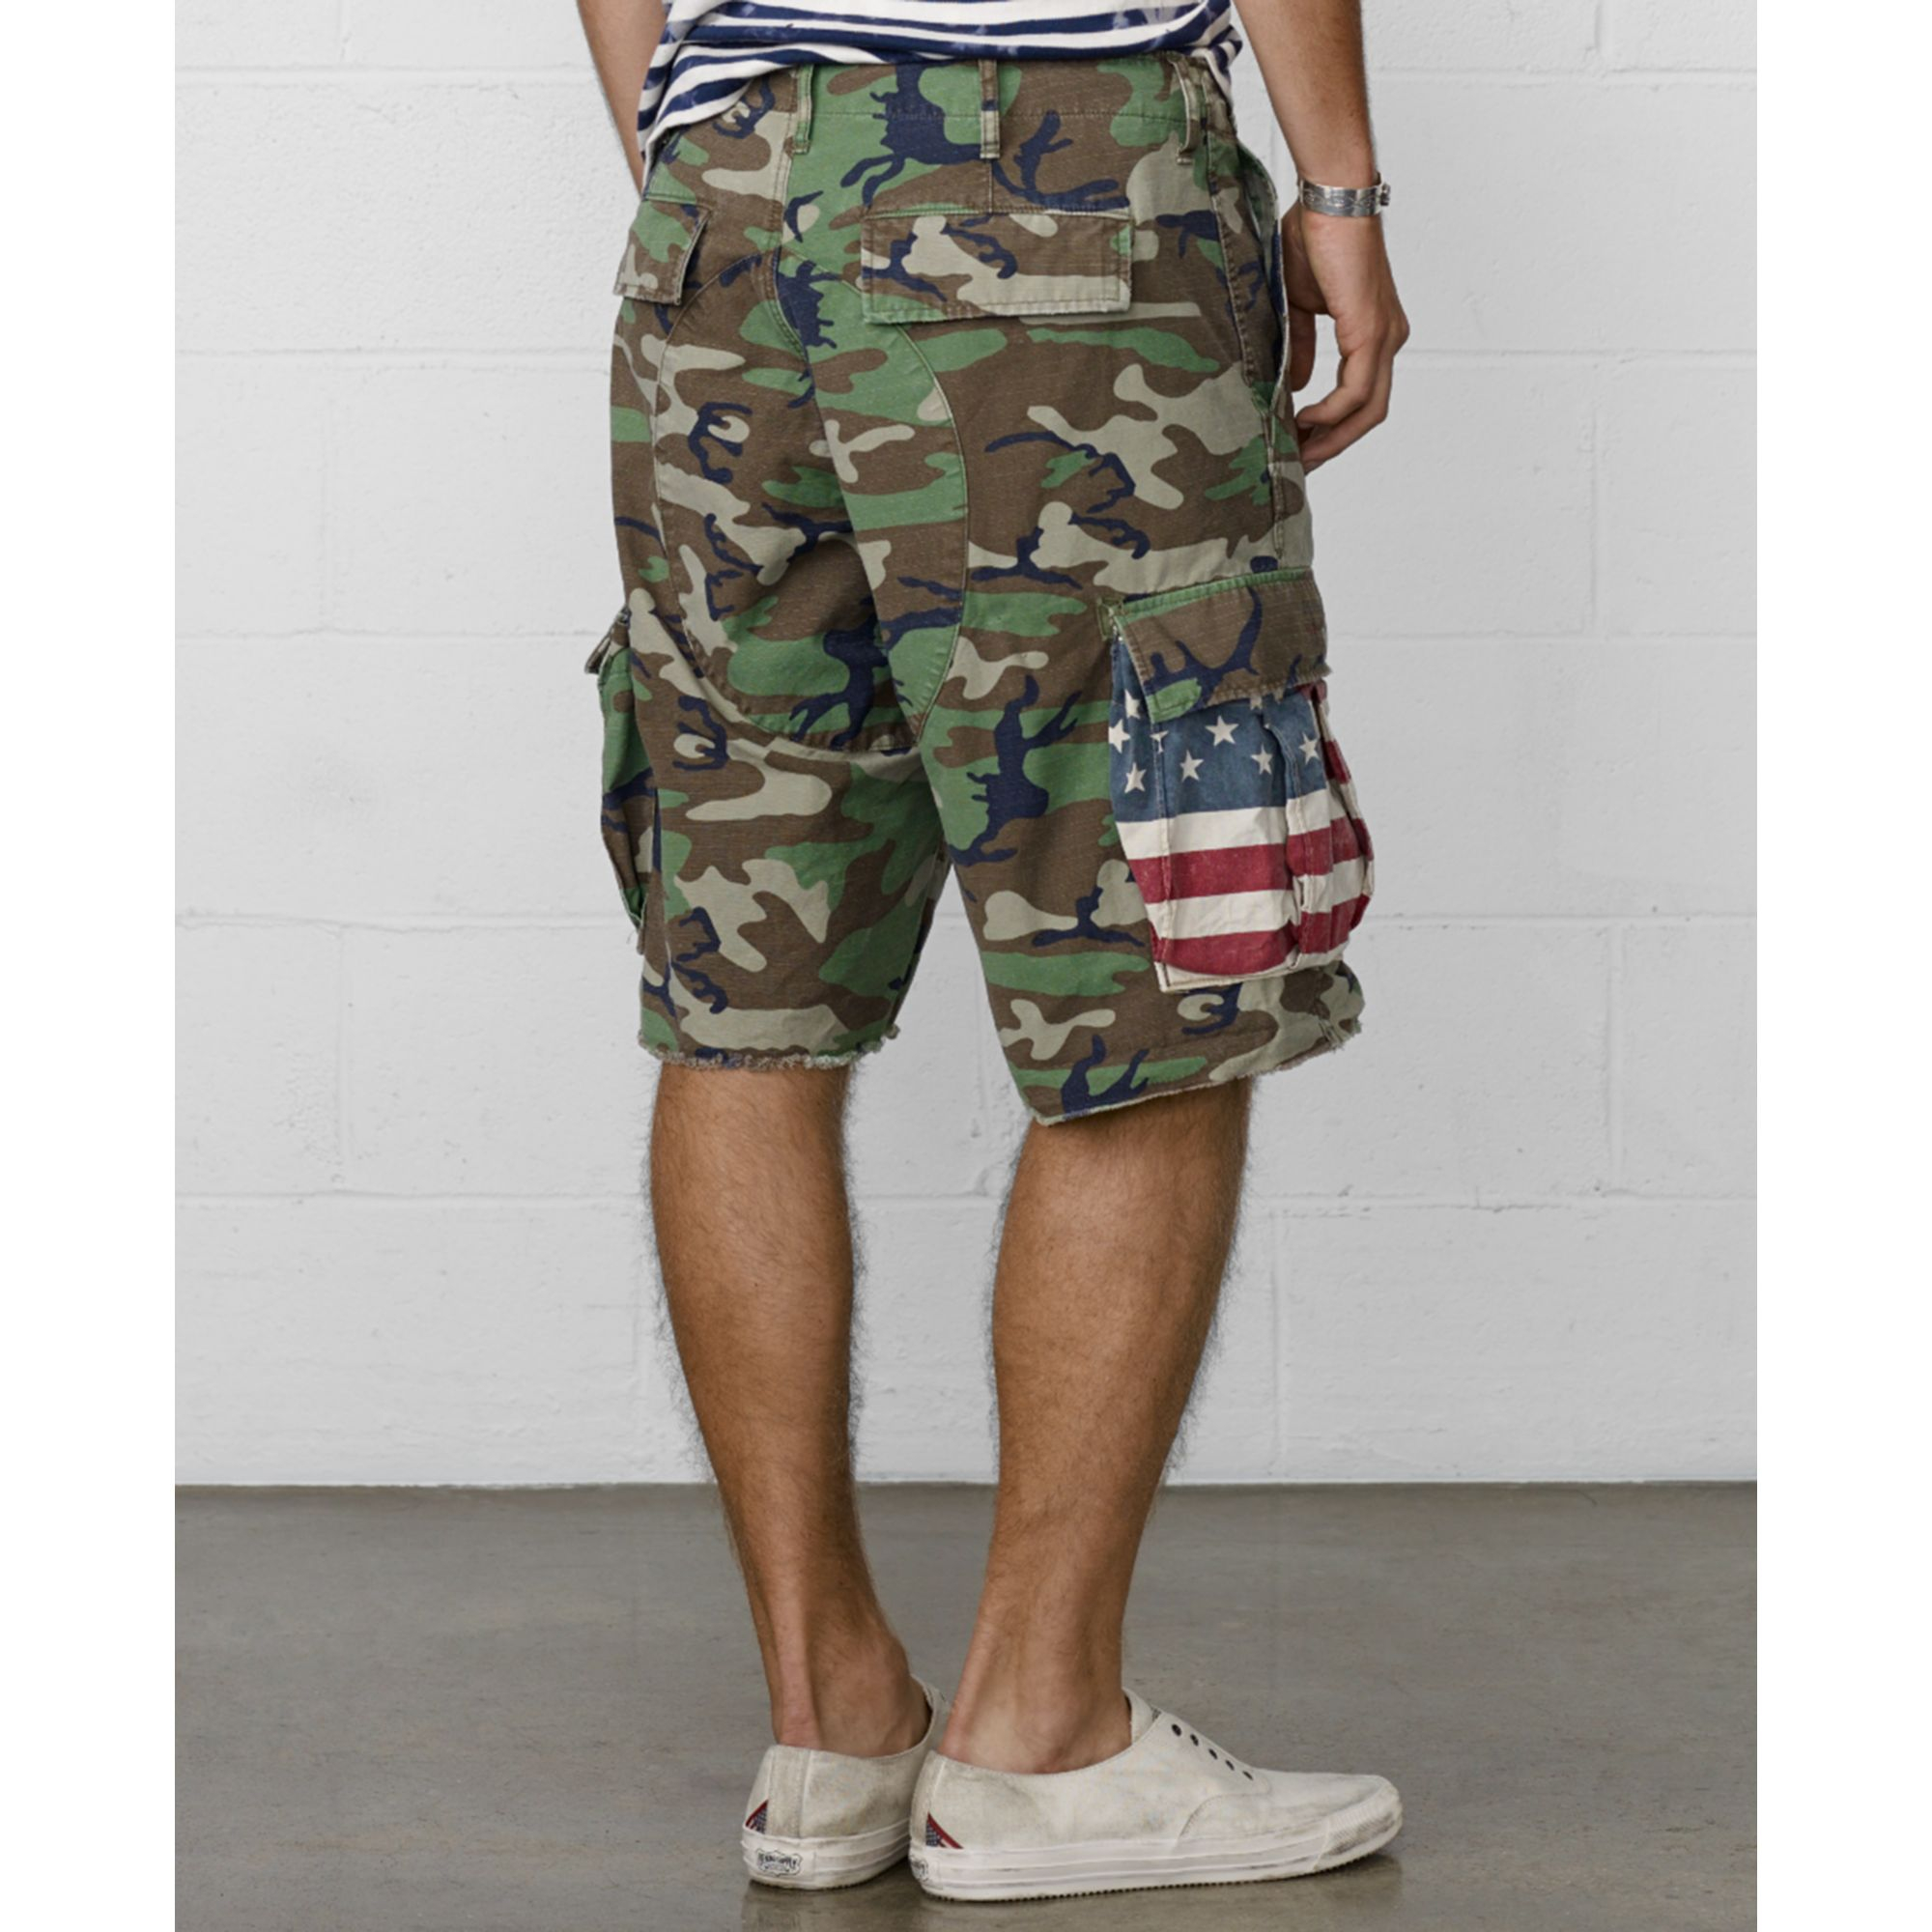 Sears has young men's shorts in a variety of styles. Shop for young men's cargo shorts and other popular styles at Sears.